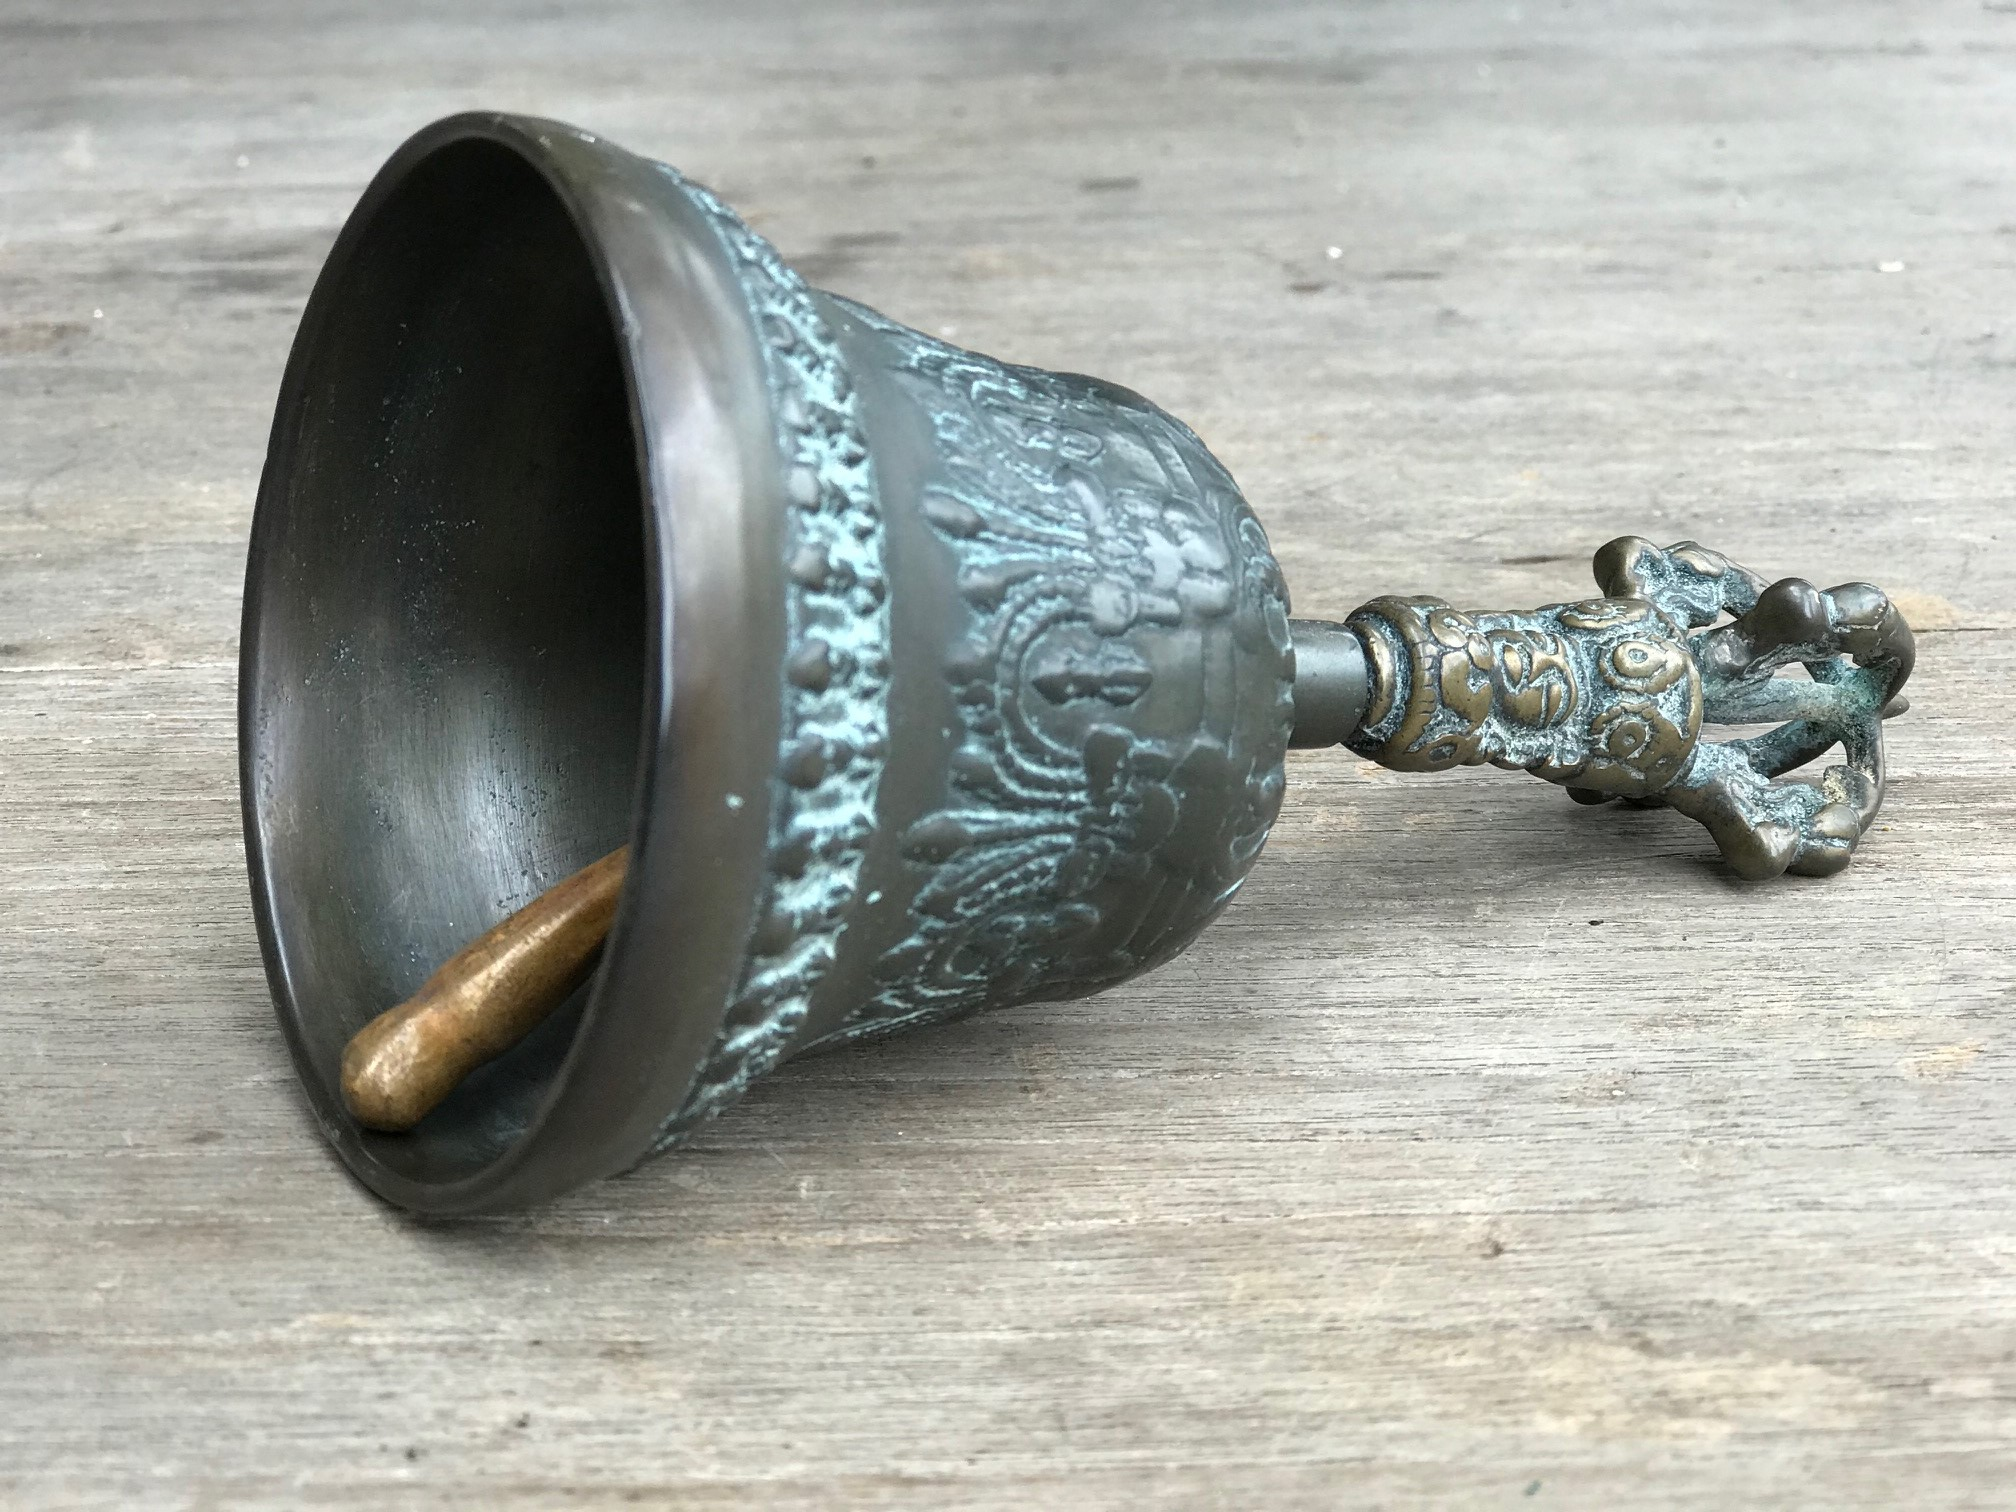 """detail of Musical Instrument, temple clapper bell with face, Nepal, 150 years old, bronze, The Bell, representing the female aspect, stands for wisdom. It is held in the left hand. If the Dorje (crown motif on top) is separate, it is held in the right hand. The are always used in combination in religious ceremonies. Together they represent enlightenment. 6 1/2"""" x 3 1/4"""", $900. thedavidalancollection.com , solana beach, ca"""